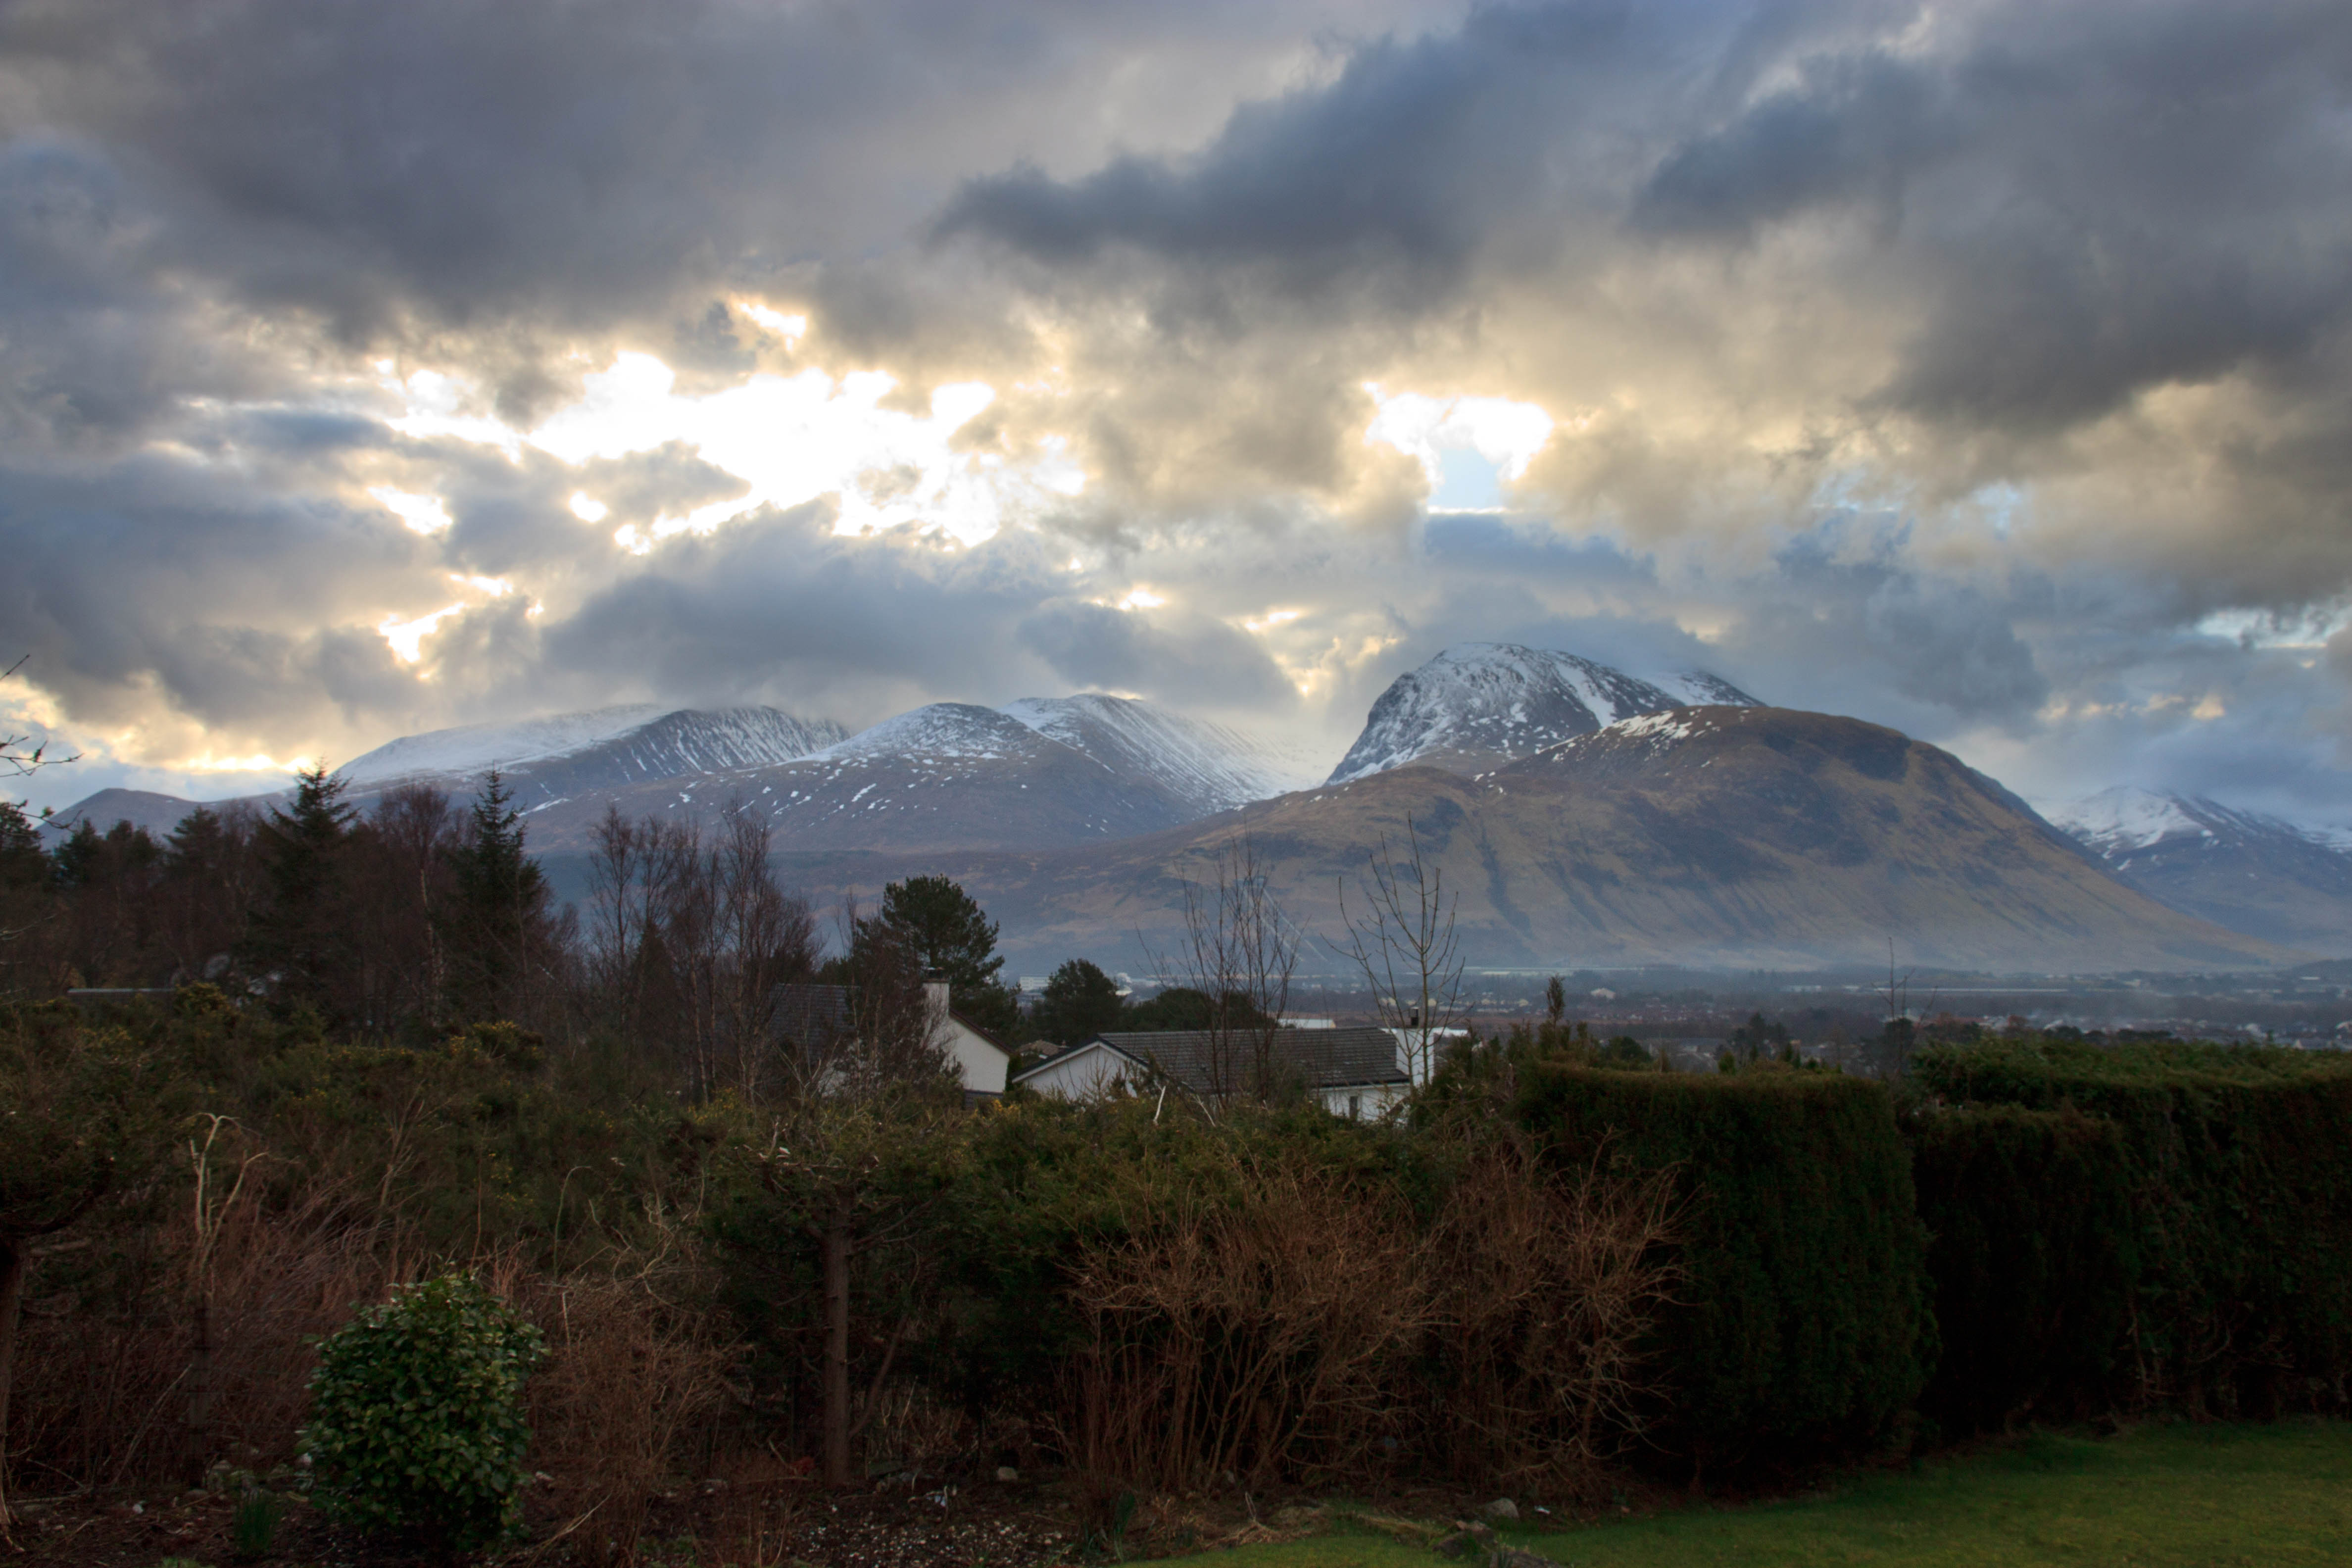 Ben Nevis from Banabie on the A380. March 2015.